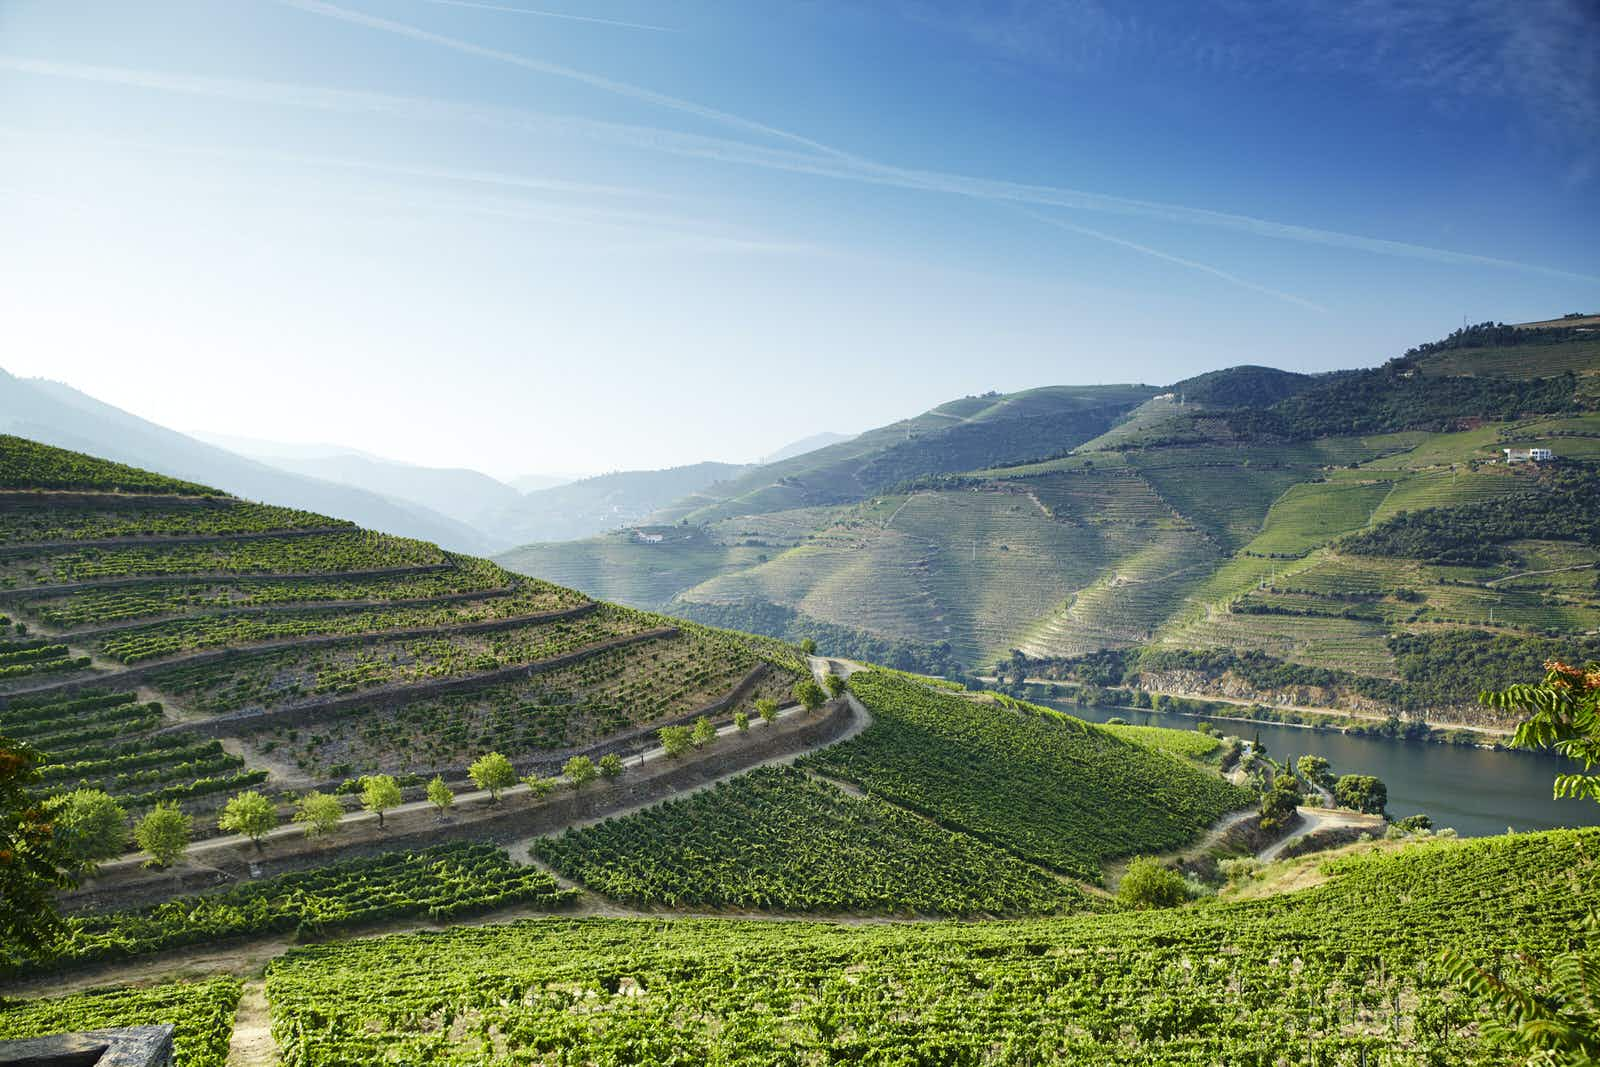 The Douro Valley is stunning to look at, but taking in vineyard tours add to its flavour © Matt Munro / Lonely Planet